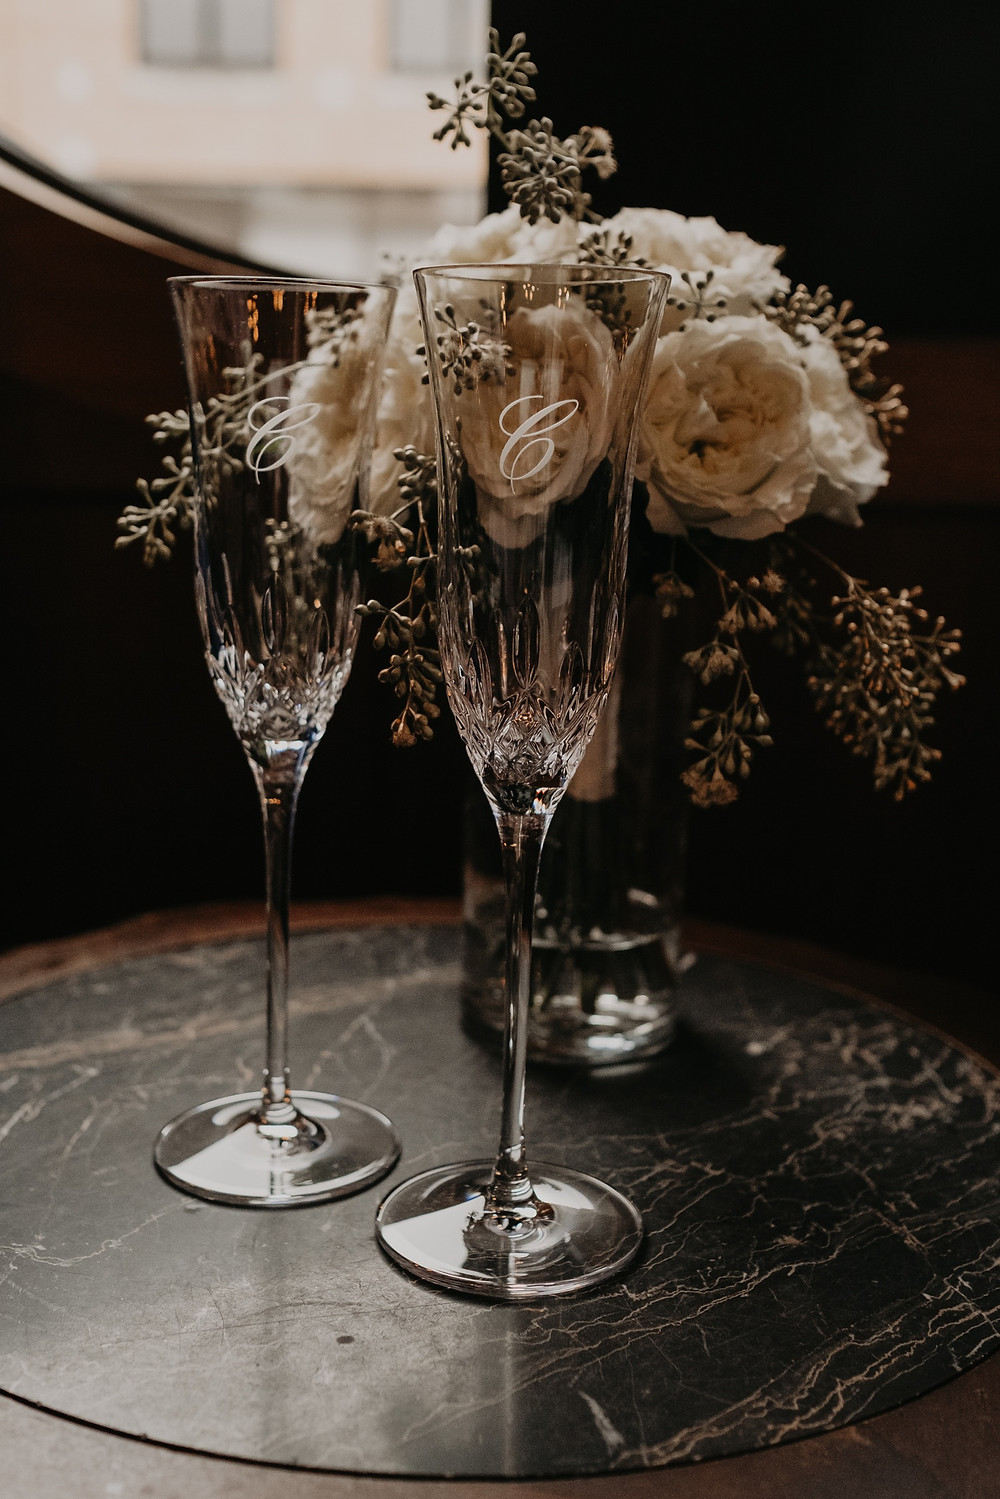 Wedding champagne flutes personalized for couple. Photographed by Nicole Leanne Photography.